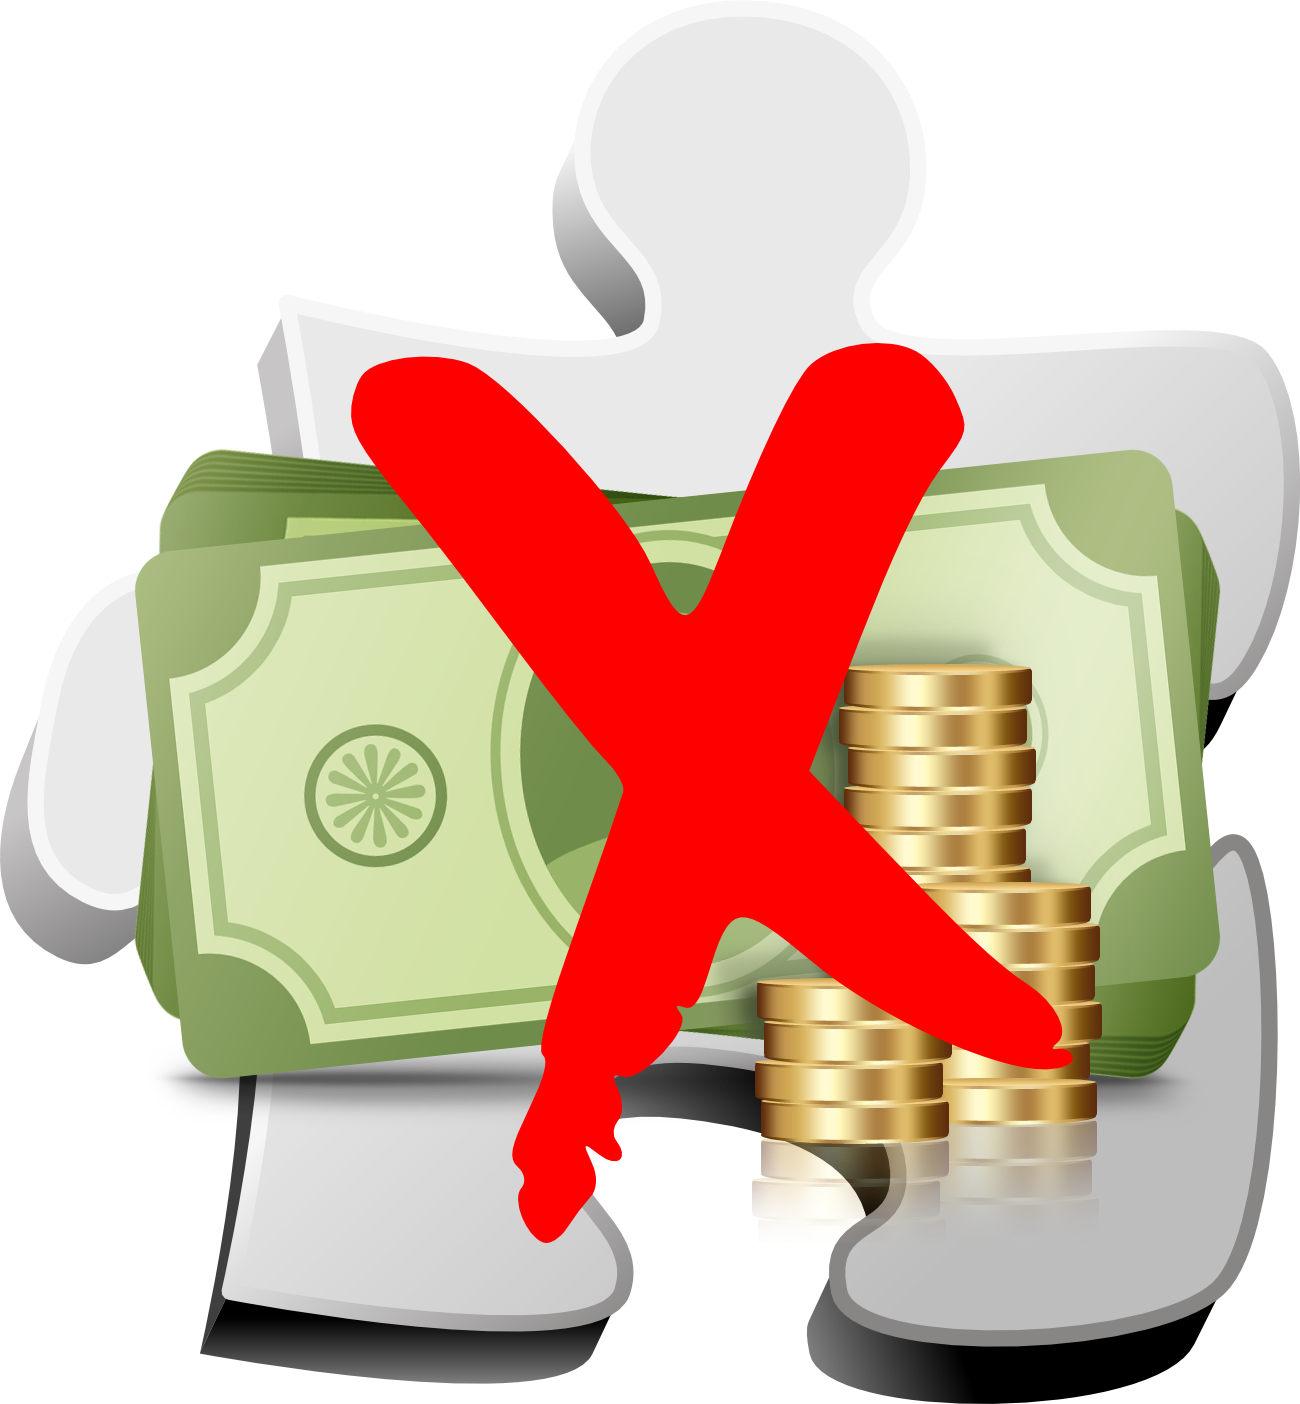 Edit png file without losing transparency. No money for wiki